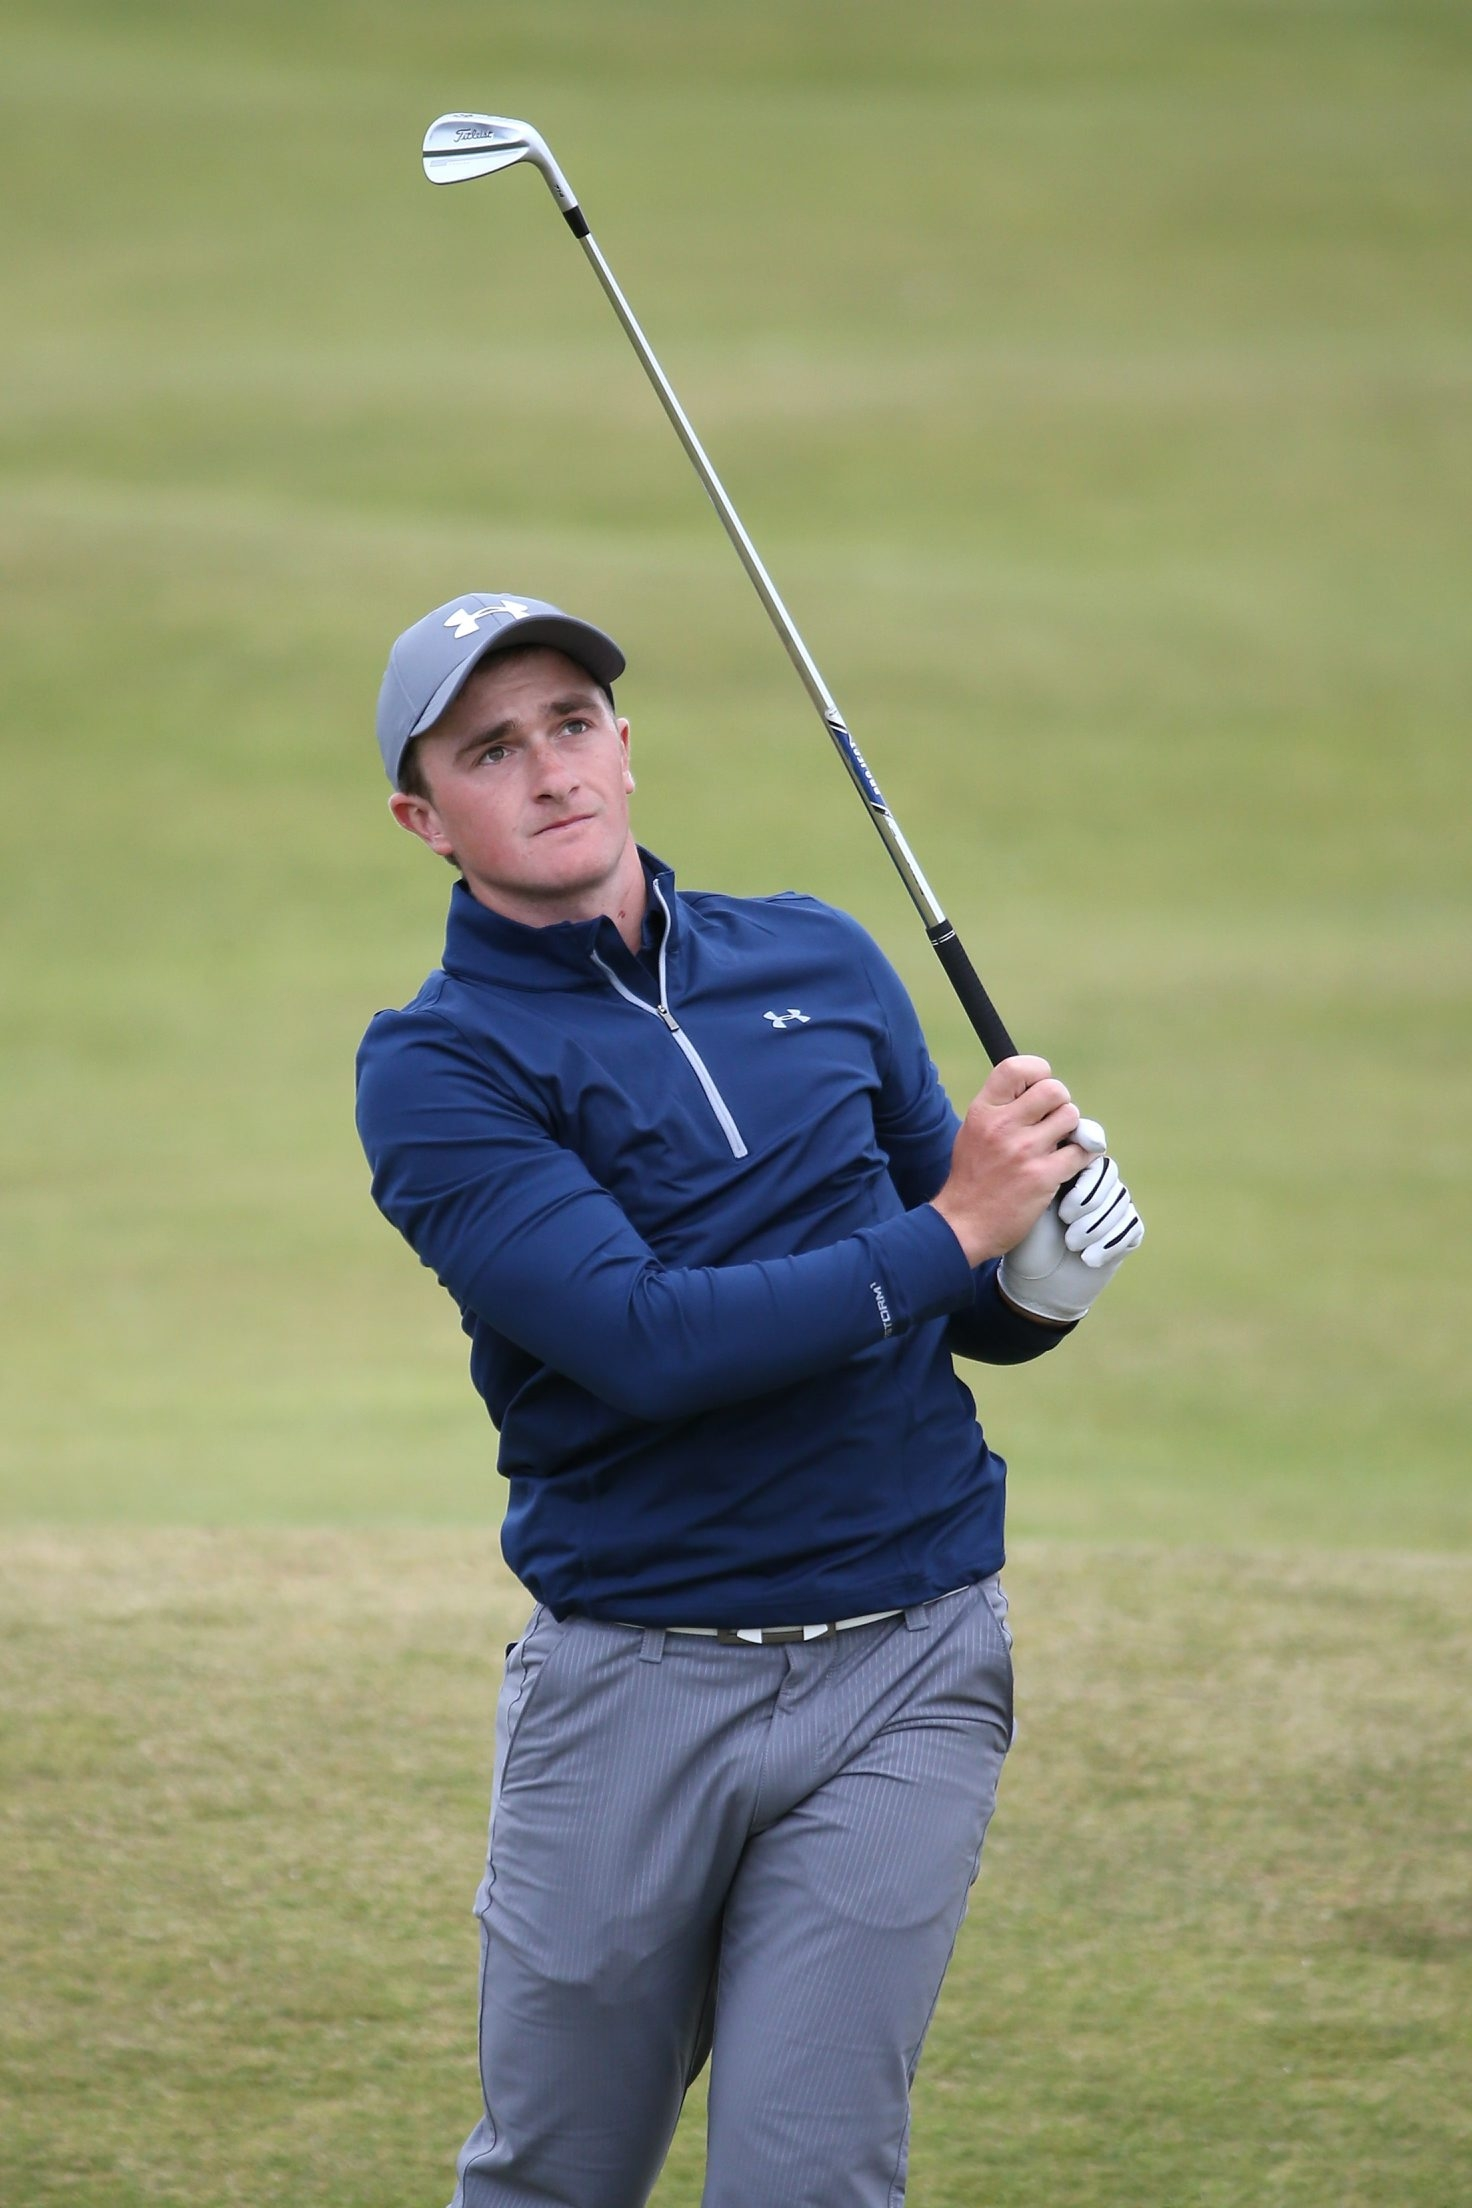 Amateur Paul Dunne of Ireland has been the surprise of the British Open so far. He finds himself tied for the lead with one round to play as he goes up against the game's best players.